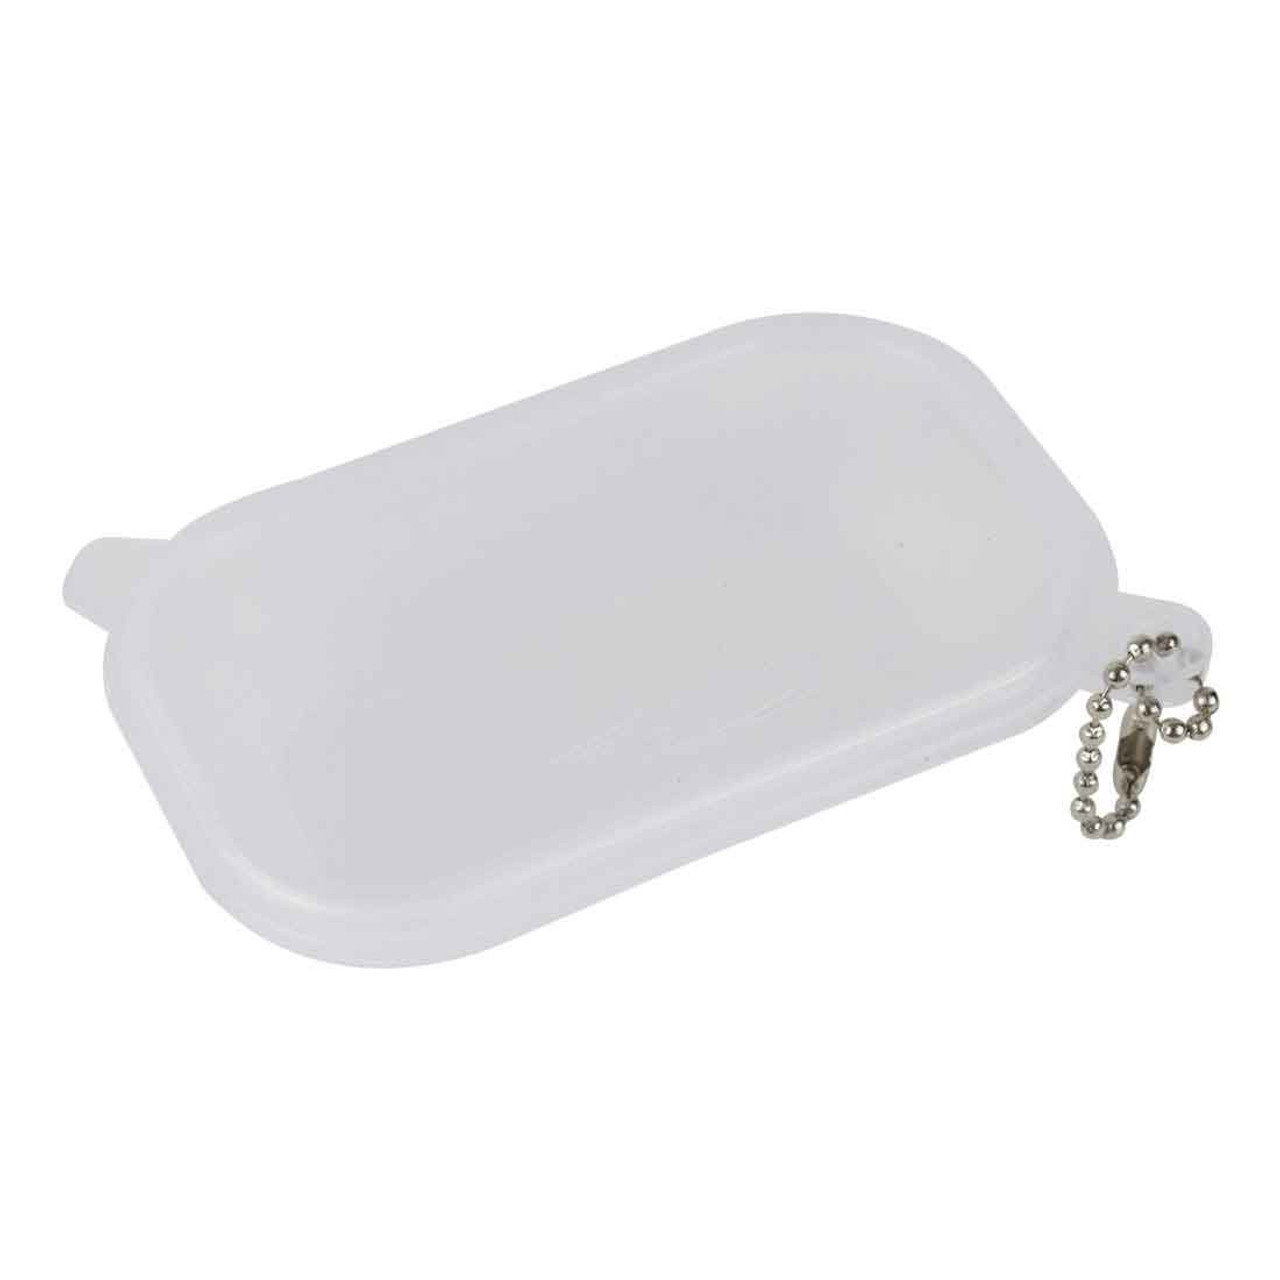 RYOT® Large Keeper Keychain Container (Pack of 50)